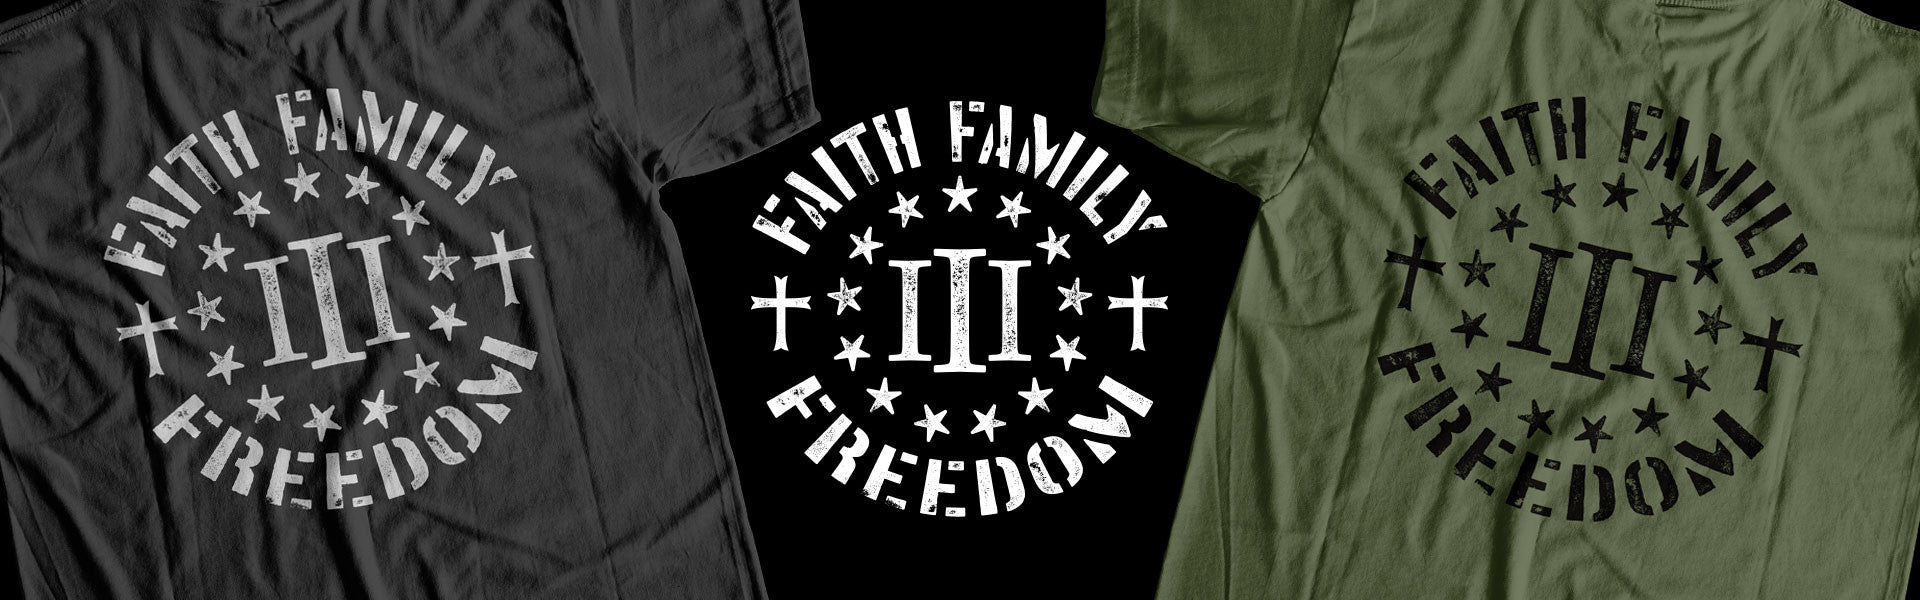 Faith Family Freedom Tee